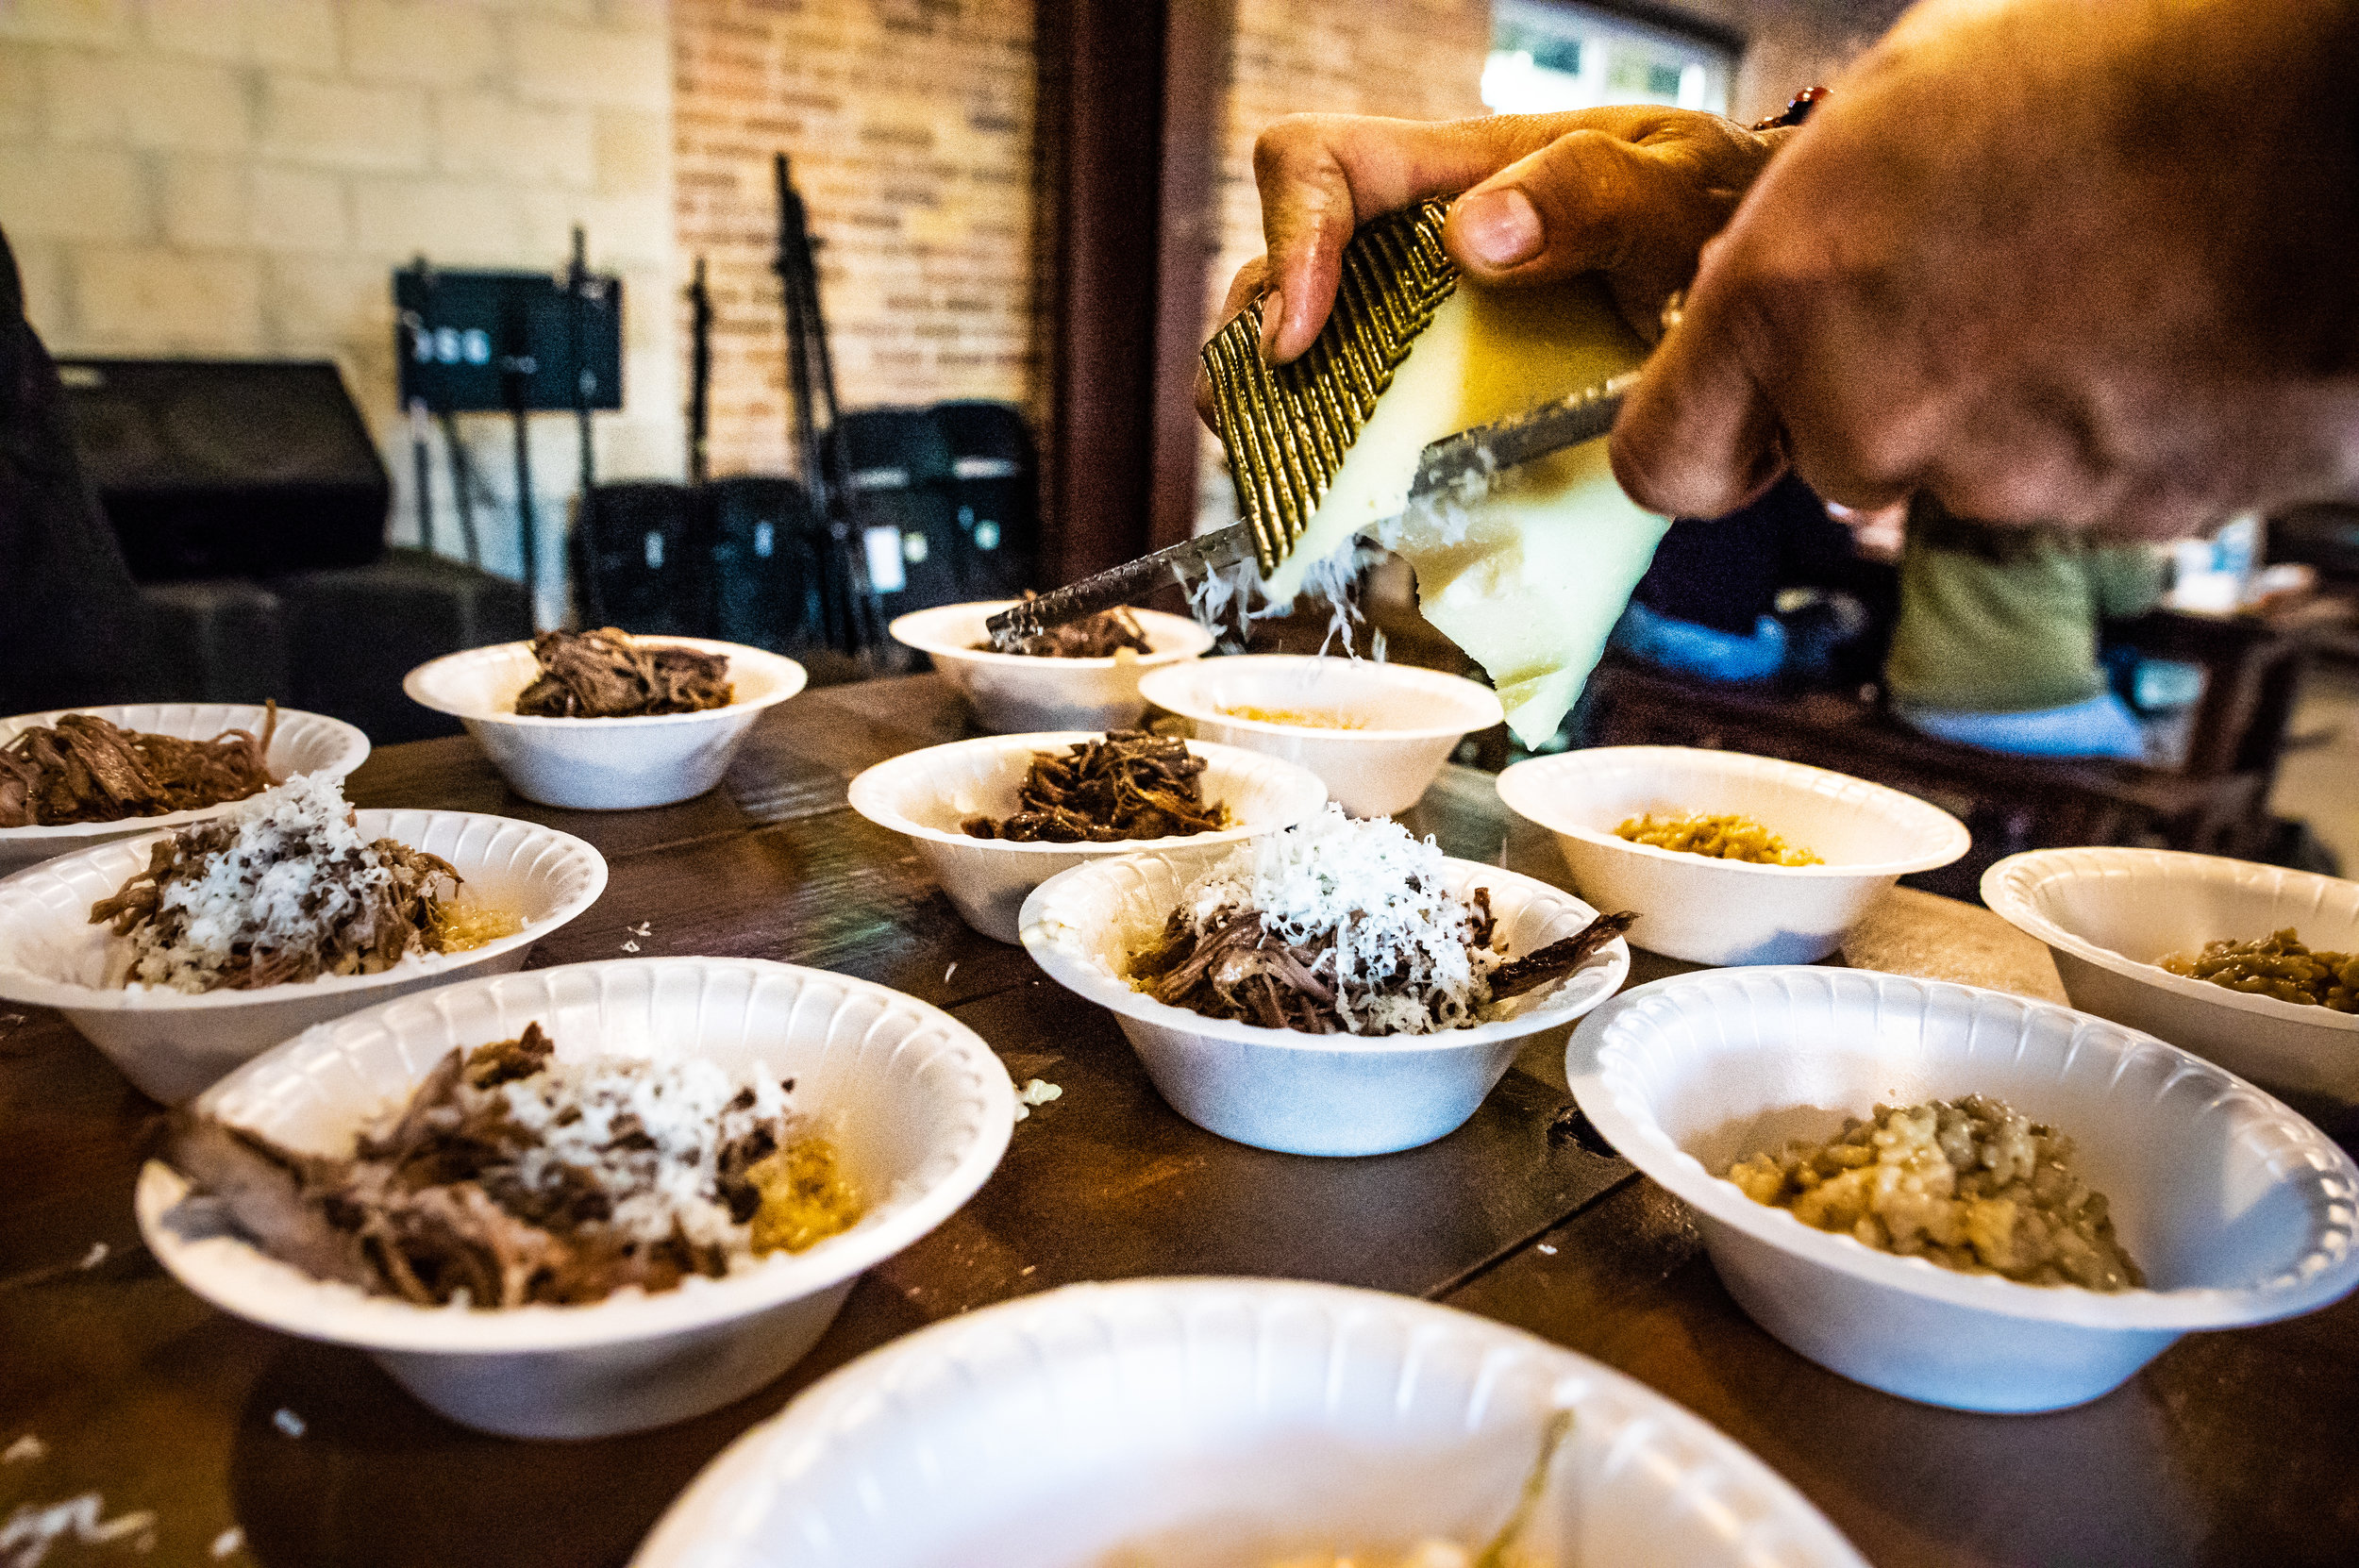 The kitchen staff in action, topping the fifth course - Red Wine Braised Brisket Risotto - with some of Ten:One's Campo de Montalban. Photo by Garrett Smith.